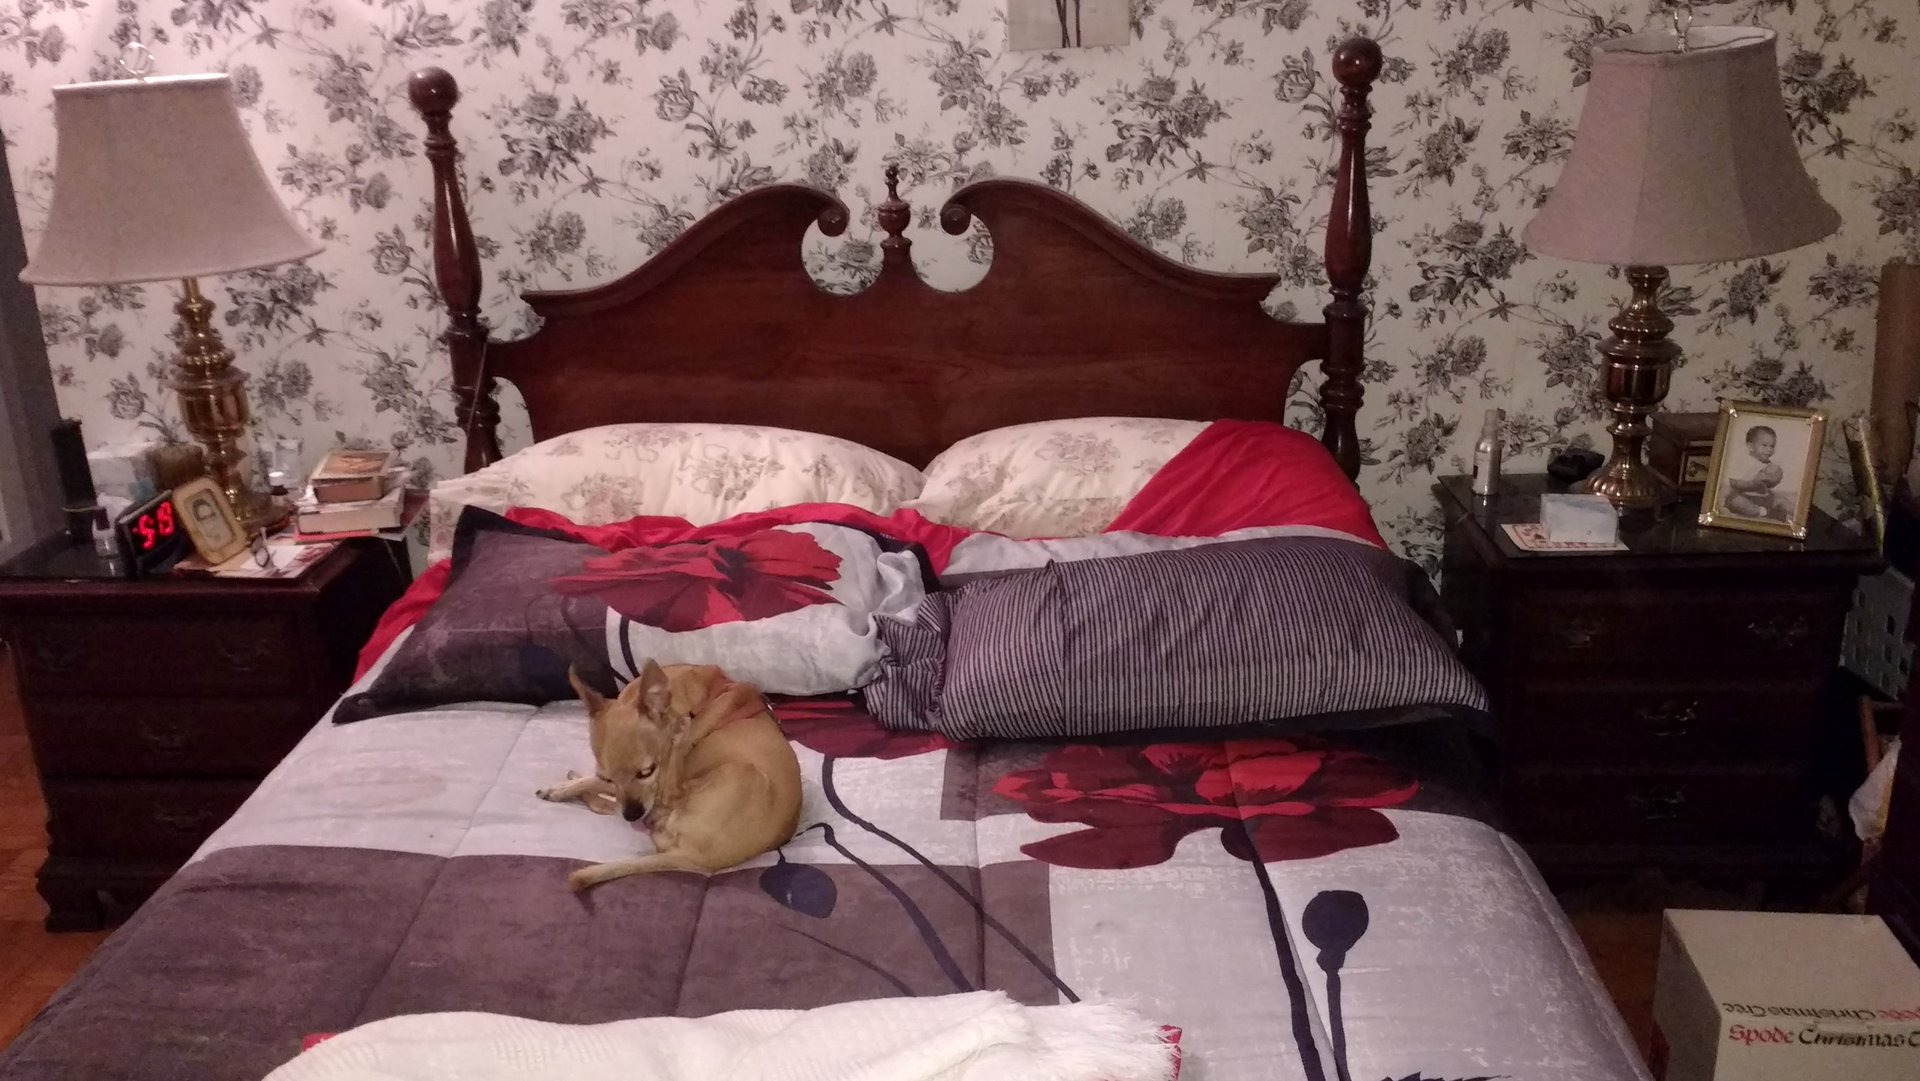 A brown chihuahua sitting on top of a queen size bed